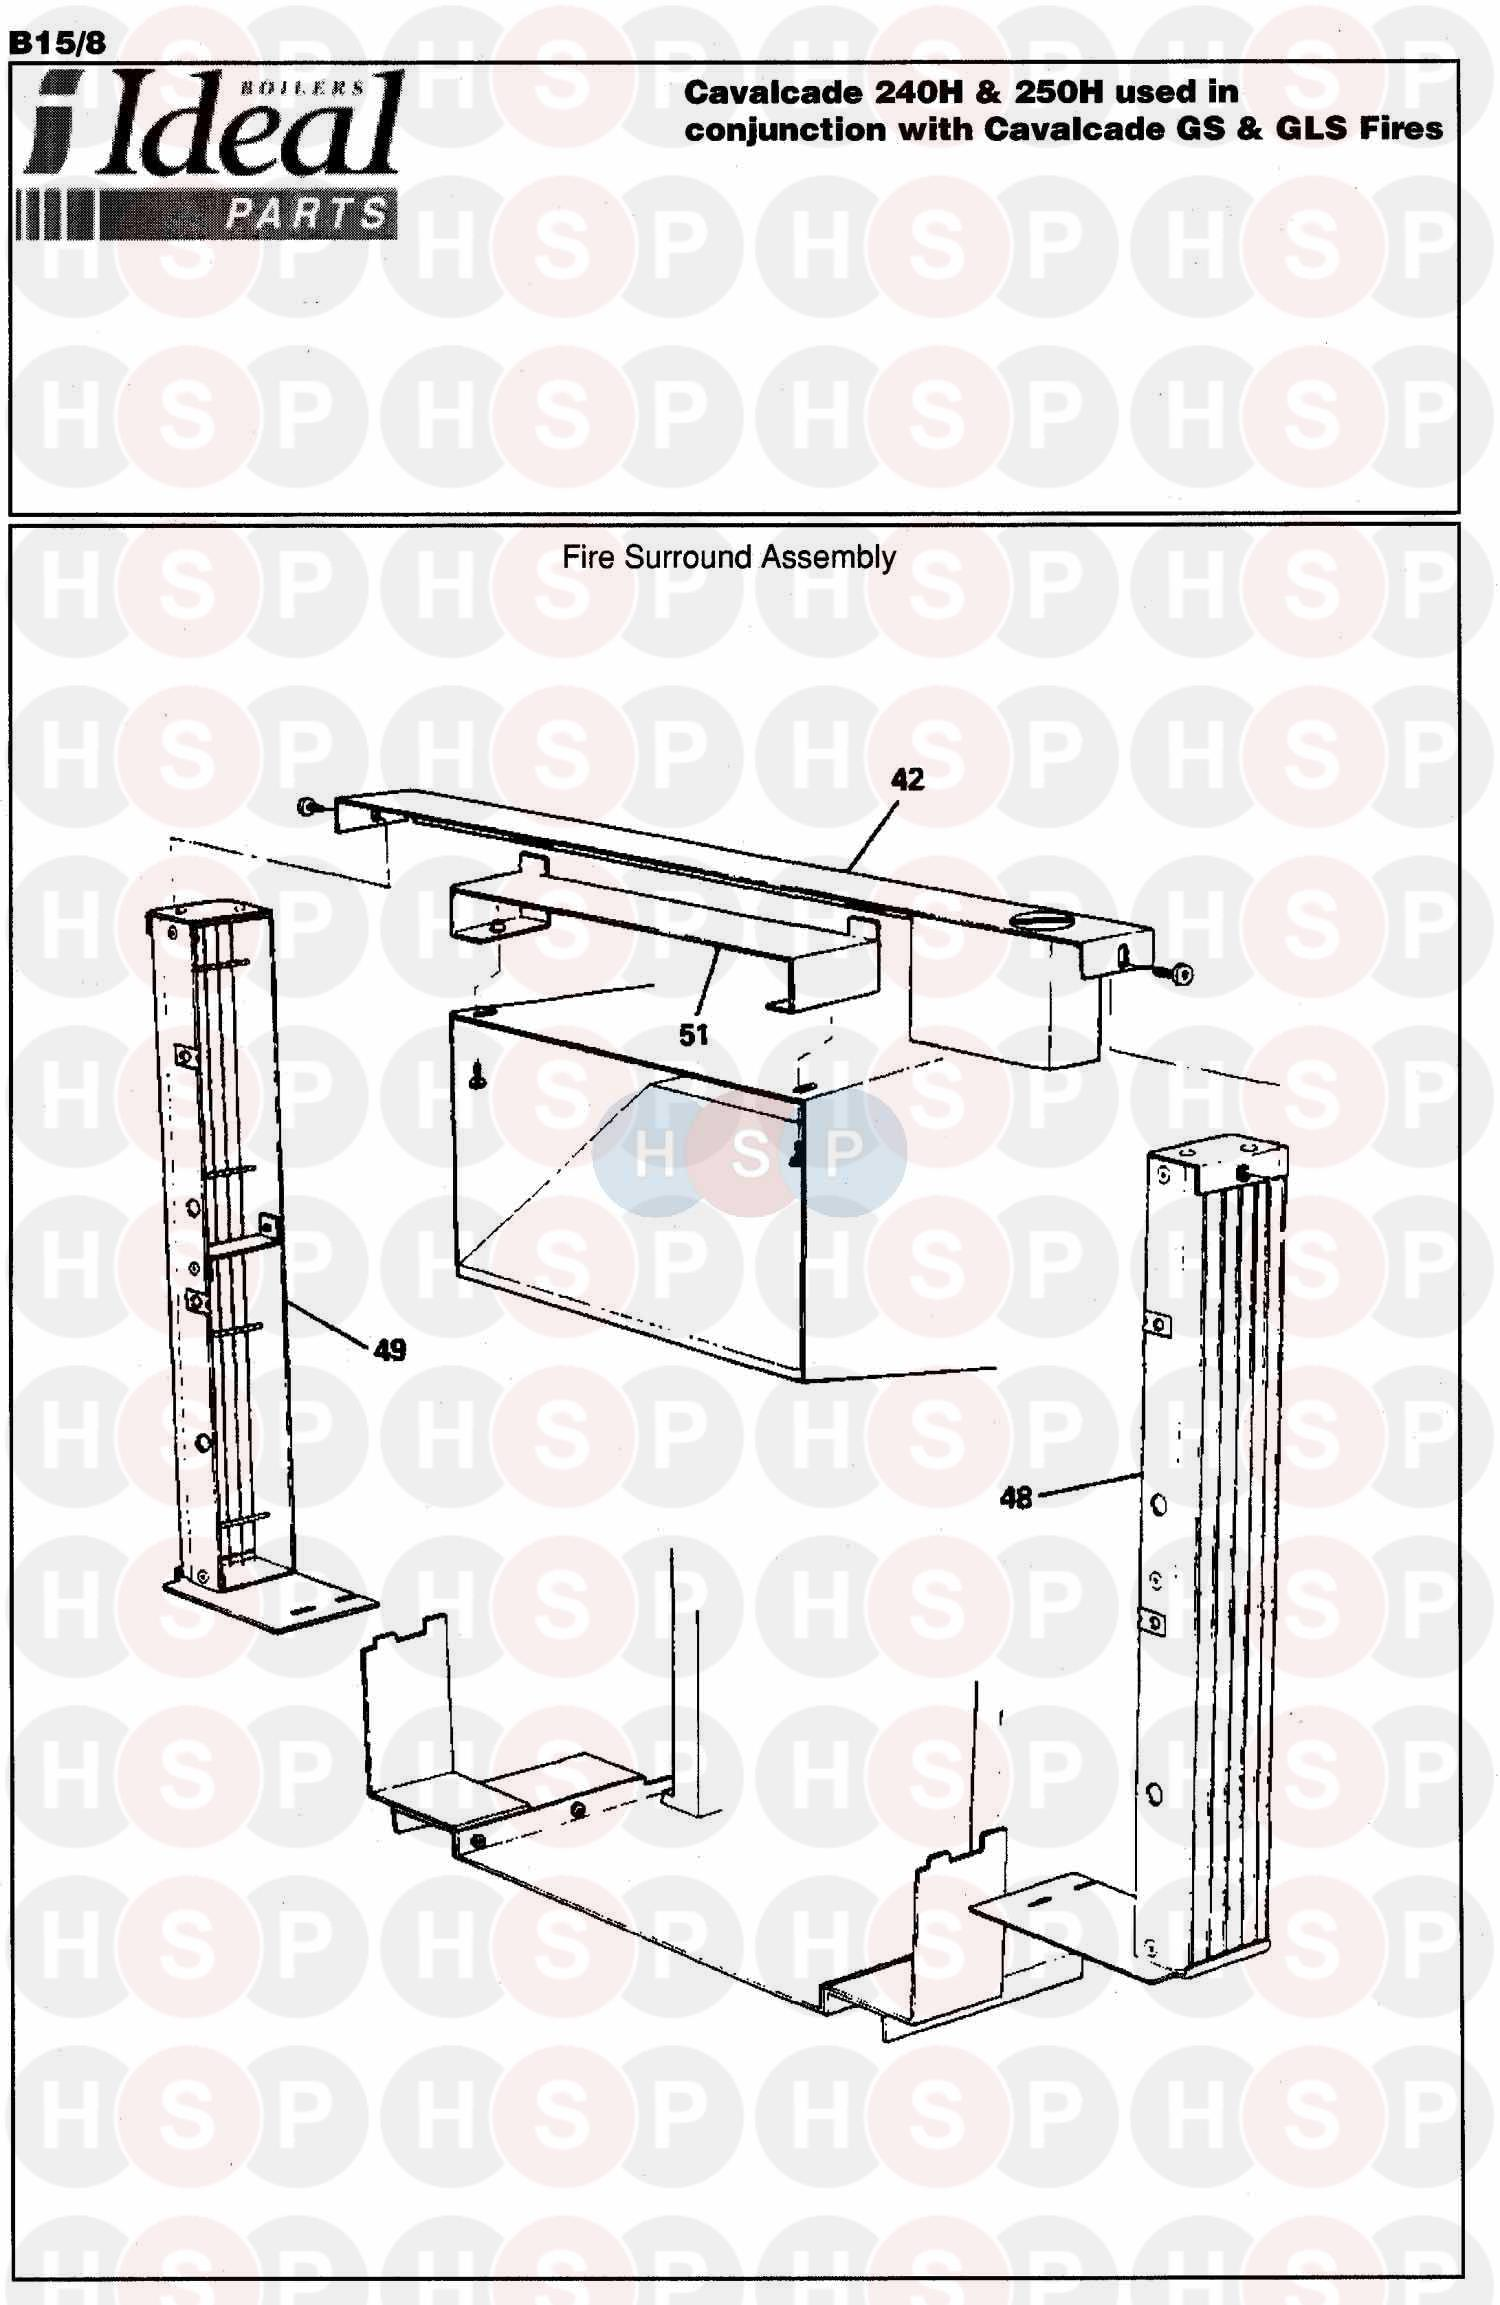 Ideal CAVALCADE 250H Appliance Diagram (FIRE ASSEMBLY 1